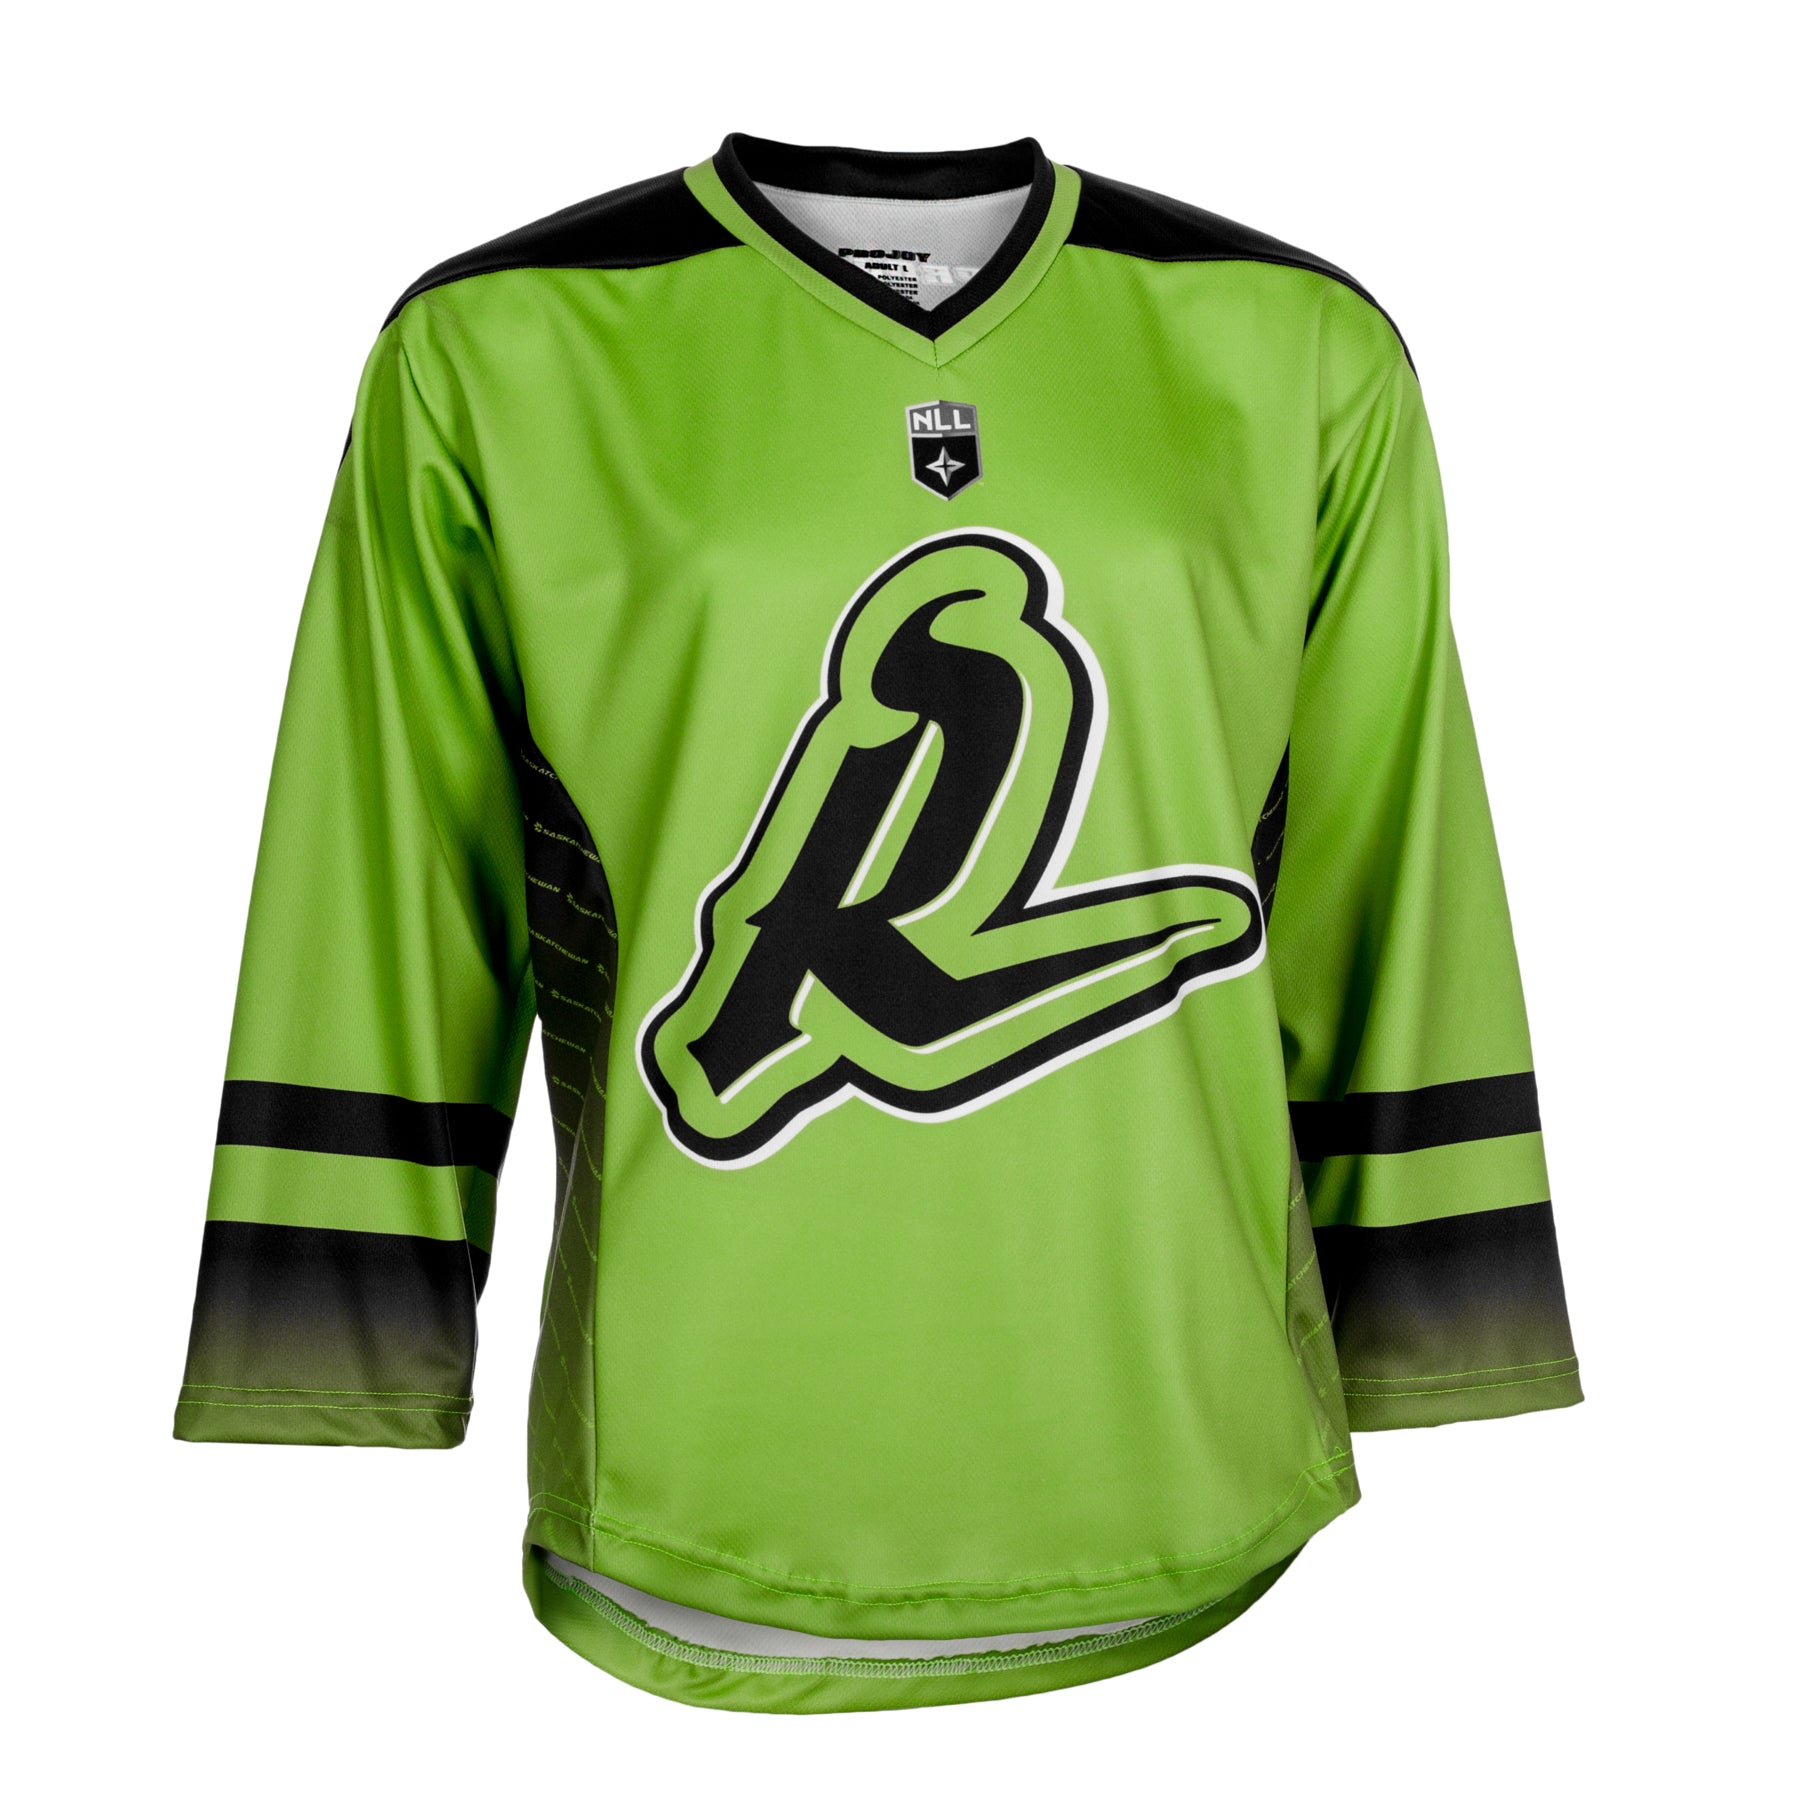 Replica Adult #8 Mike Messenger Jersey - 2018 - Lime